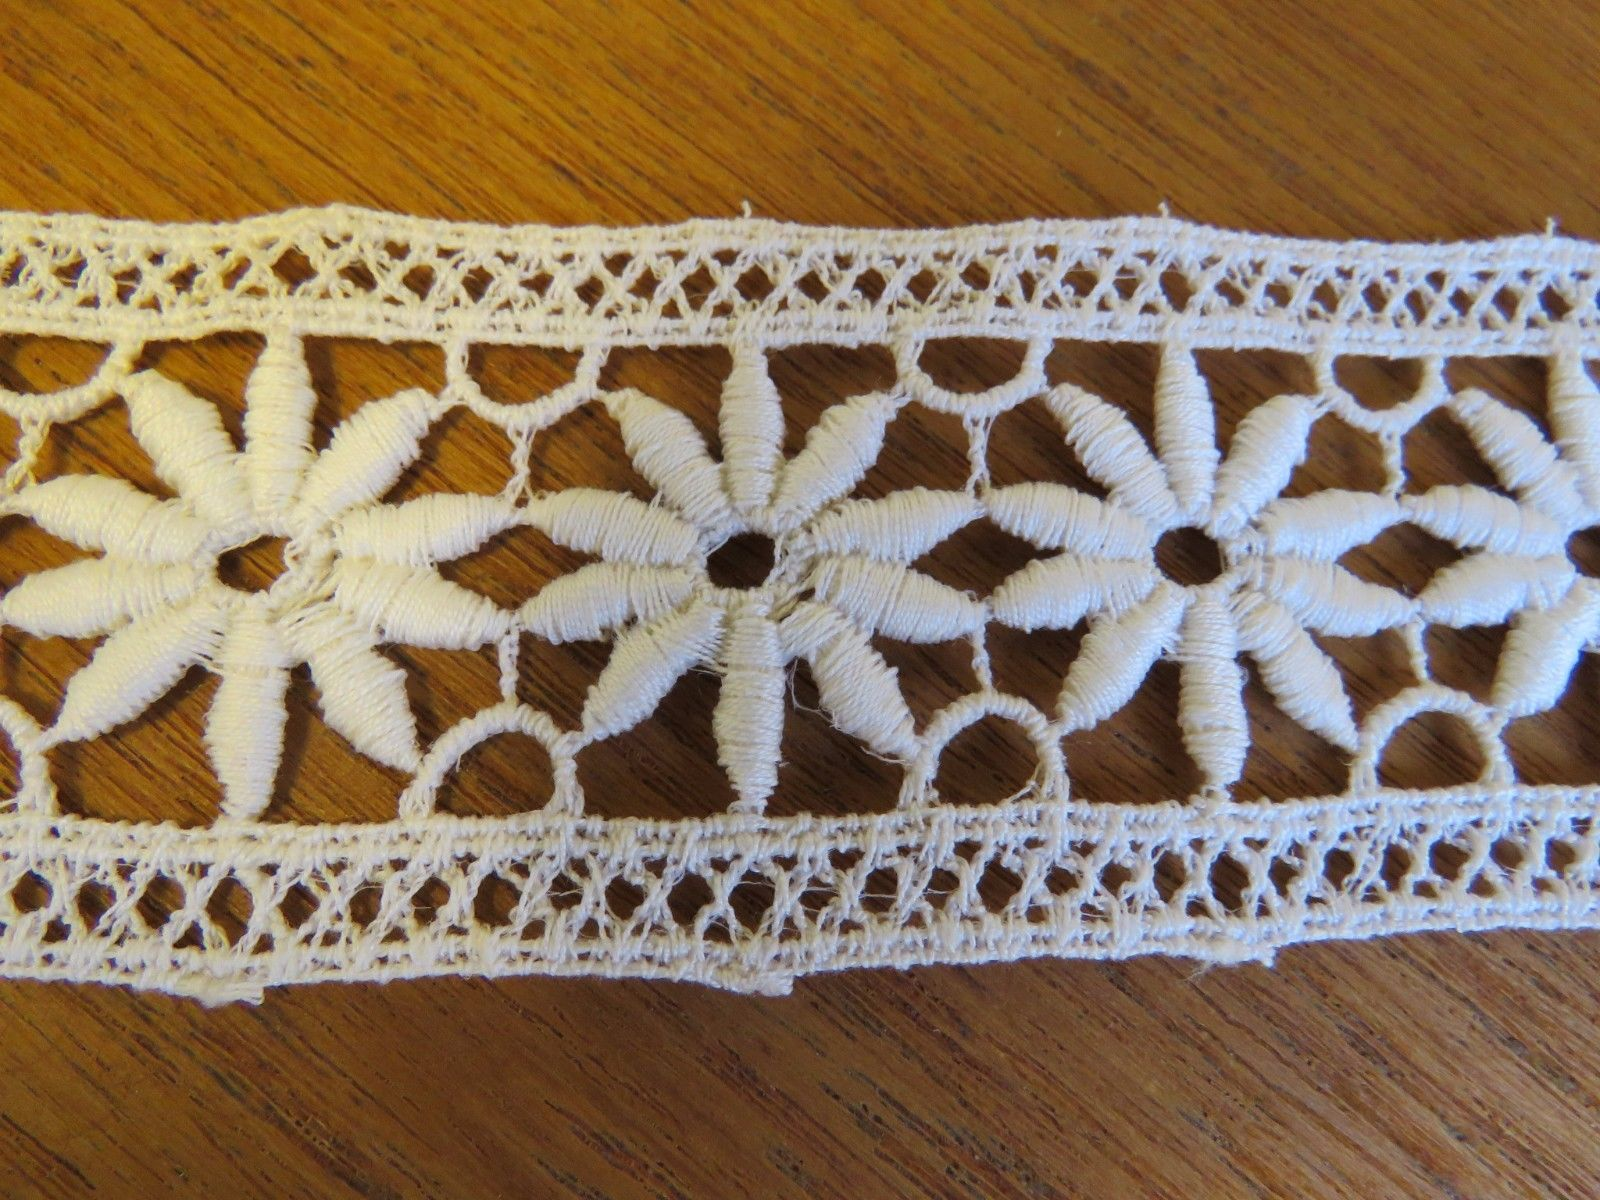 "Vintage Lace Trim Insertion 36"" Daisy Flower 1960's Edging Creamy White (LAC-126)"